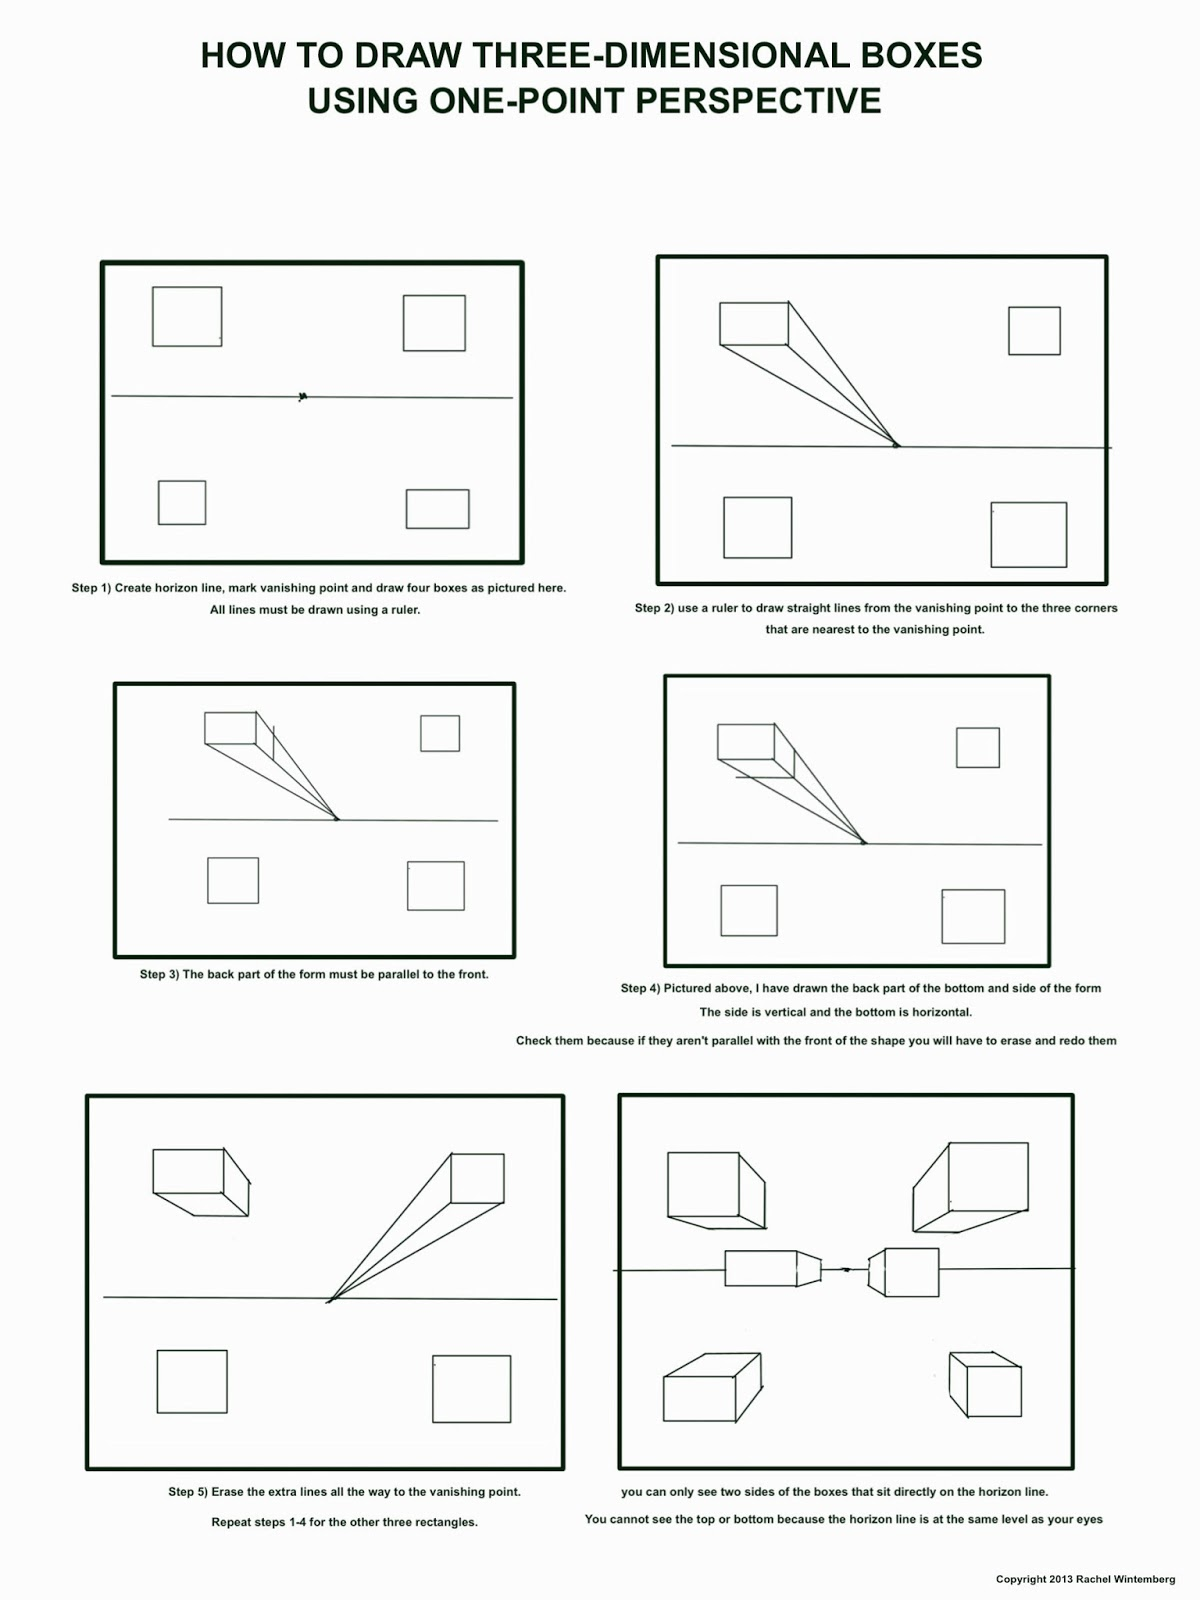 worksheet Step Four Worksheets the helpful art teacher fun with one point perspective boxes and an error occurred